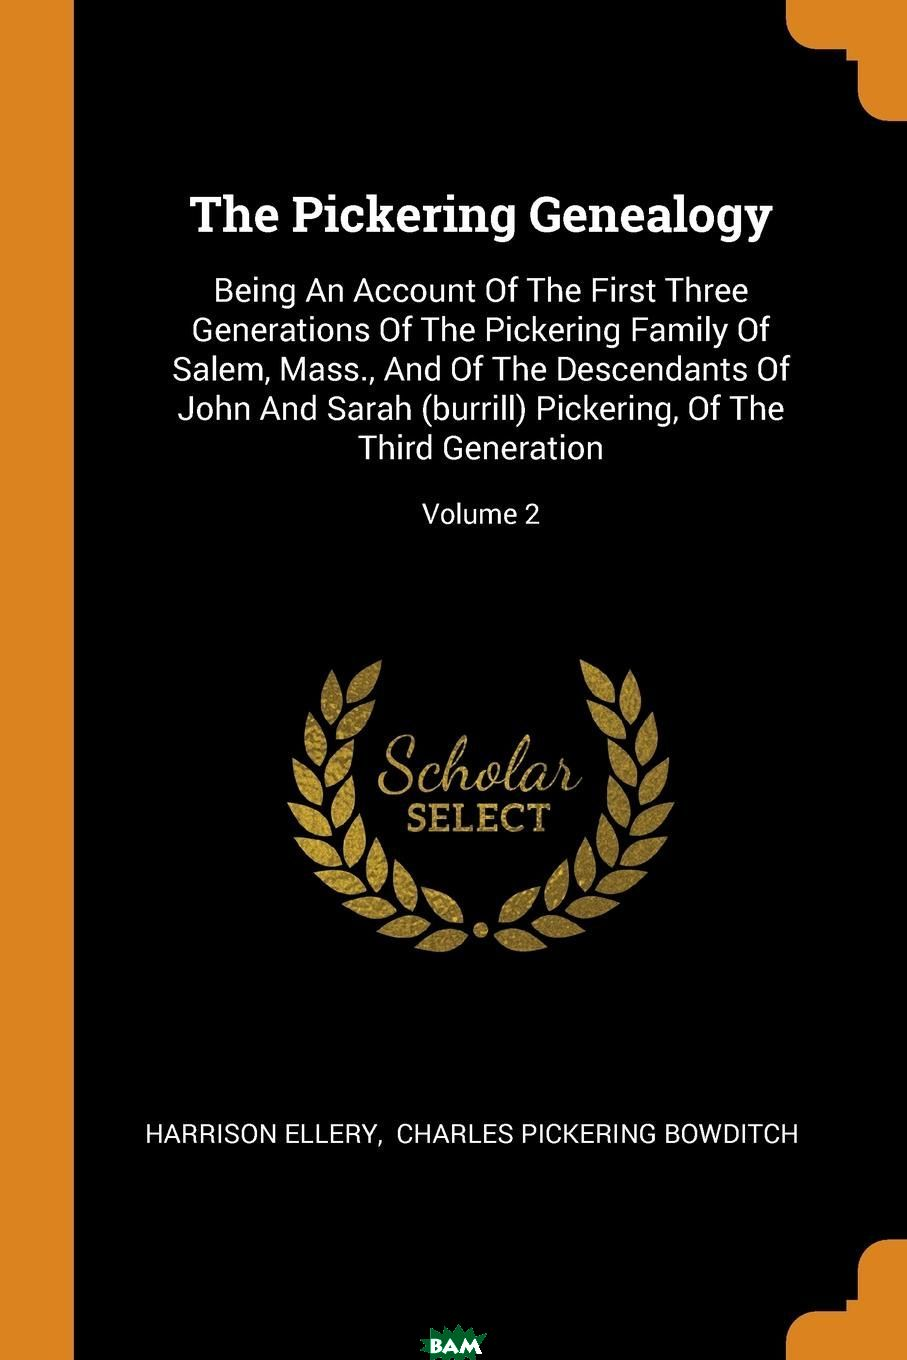 Купить The Pickering Genealogy. Being An Account Of The First Three Generations Of The Pickering Family Of Salem, Mass., And Of The Descendants Of John And Sarah (burrill) Pickering, Of The Third Generation, Harrison Ellery, 9780353572386